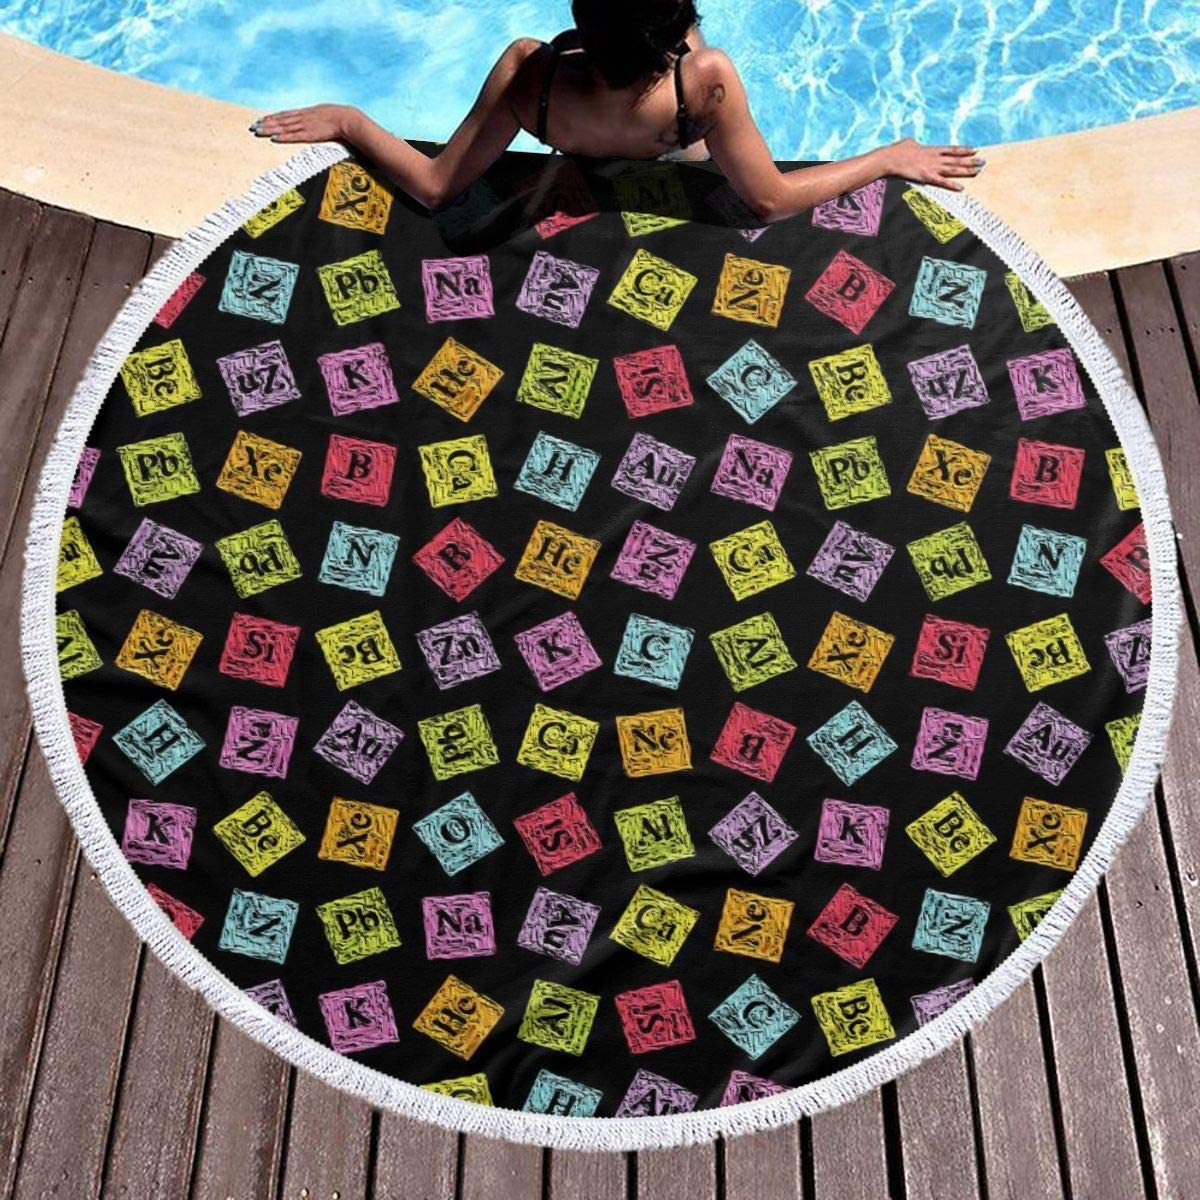 Round Beach Towel Chemistry Turvy w Blanket Funny Periodic Indianapolis Mall Max 42% OFF Large